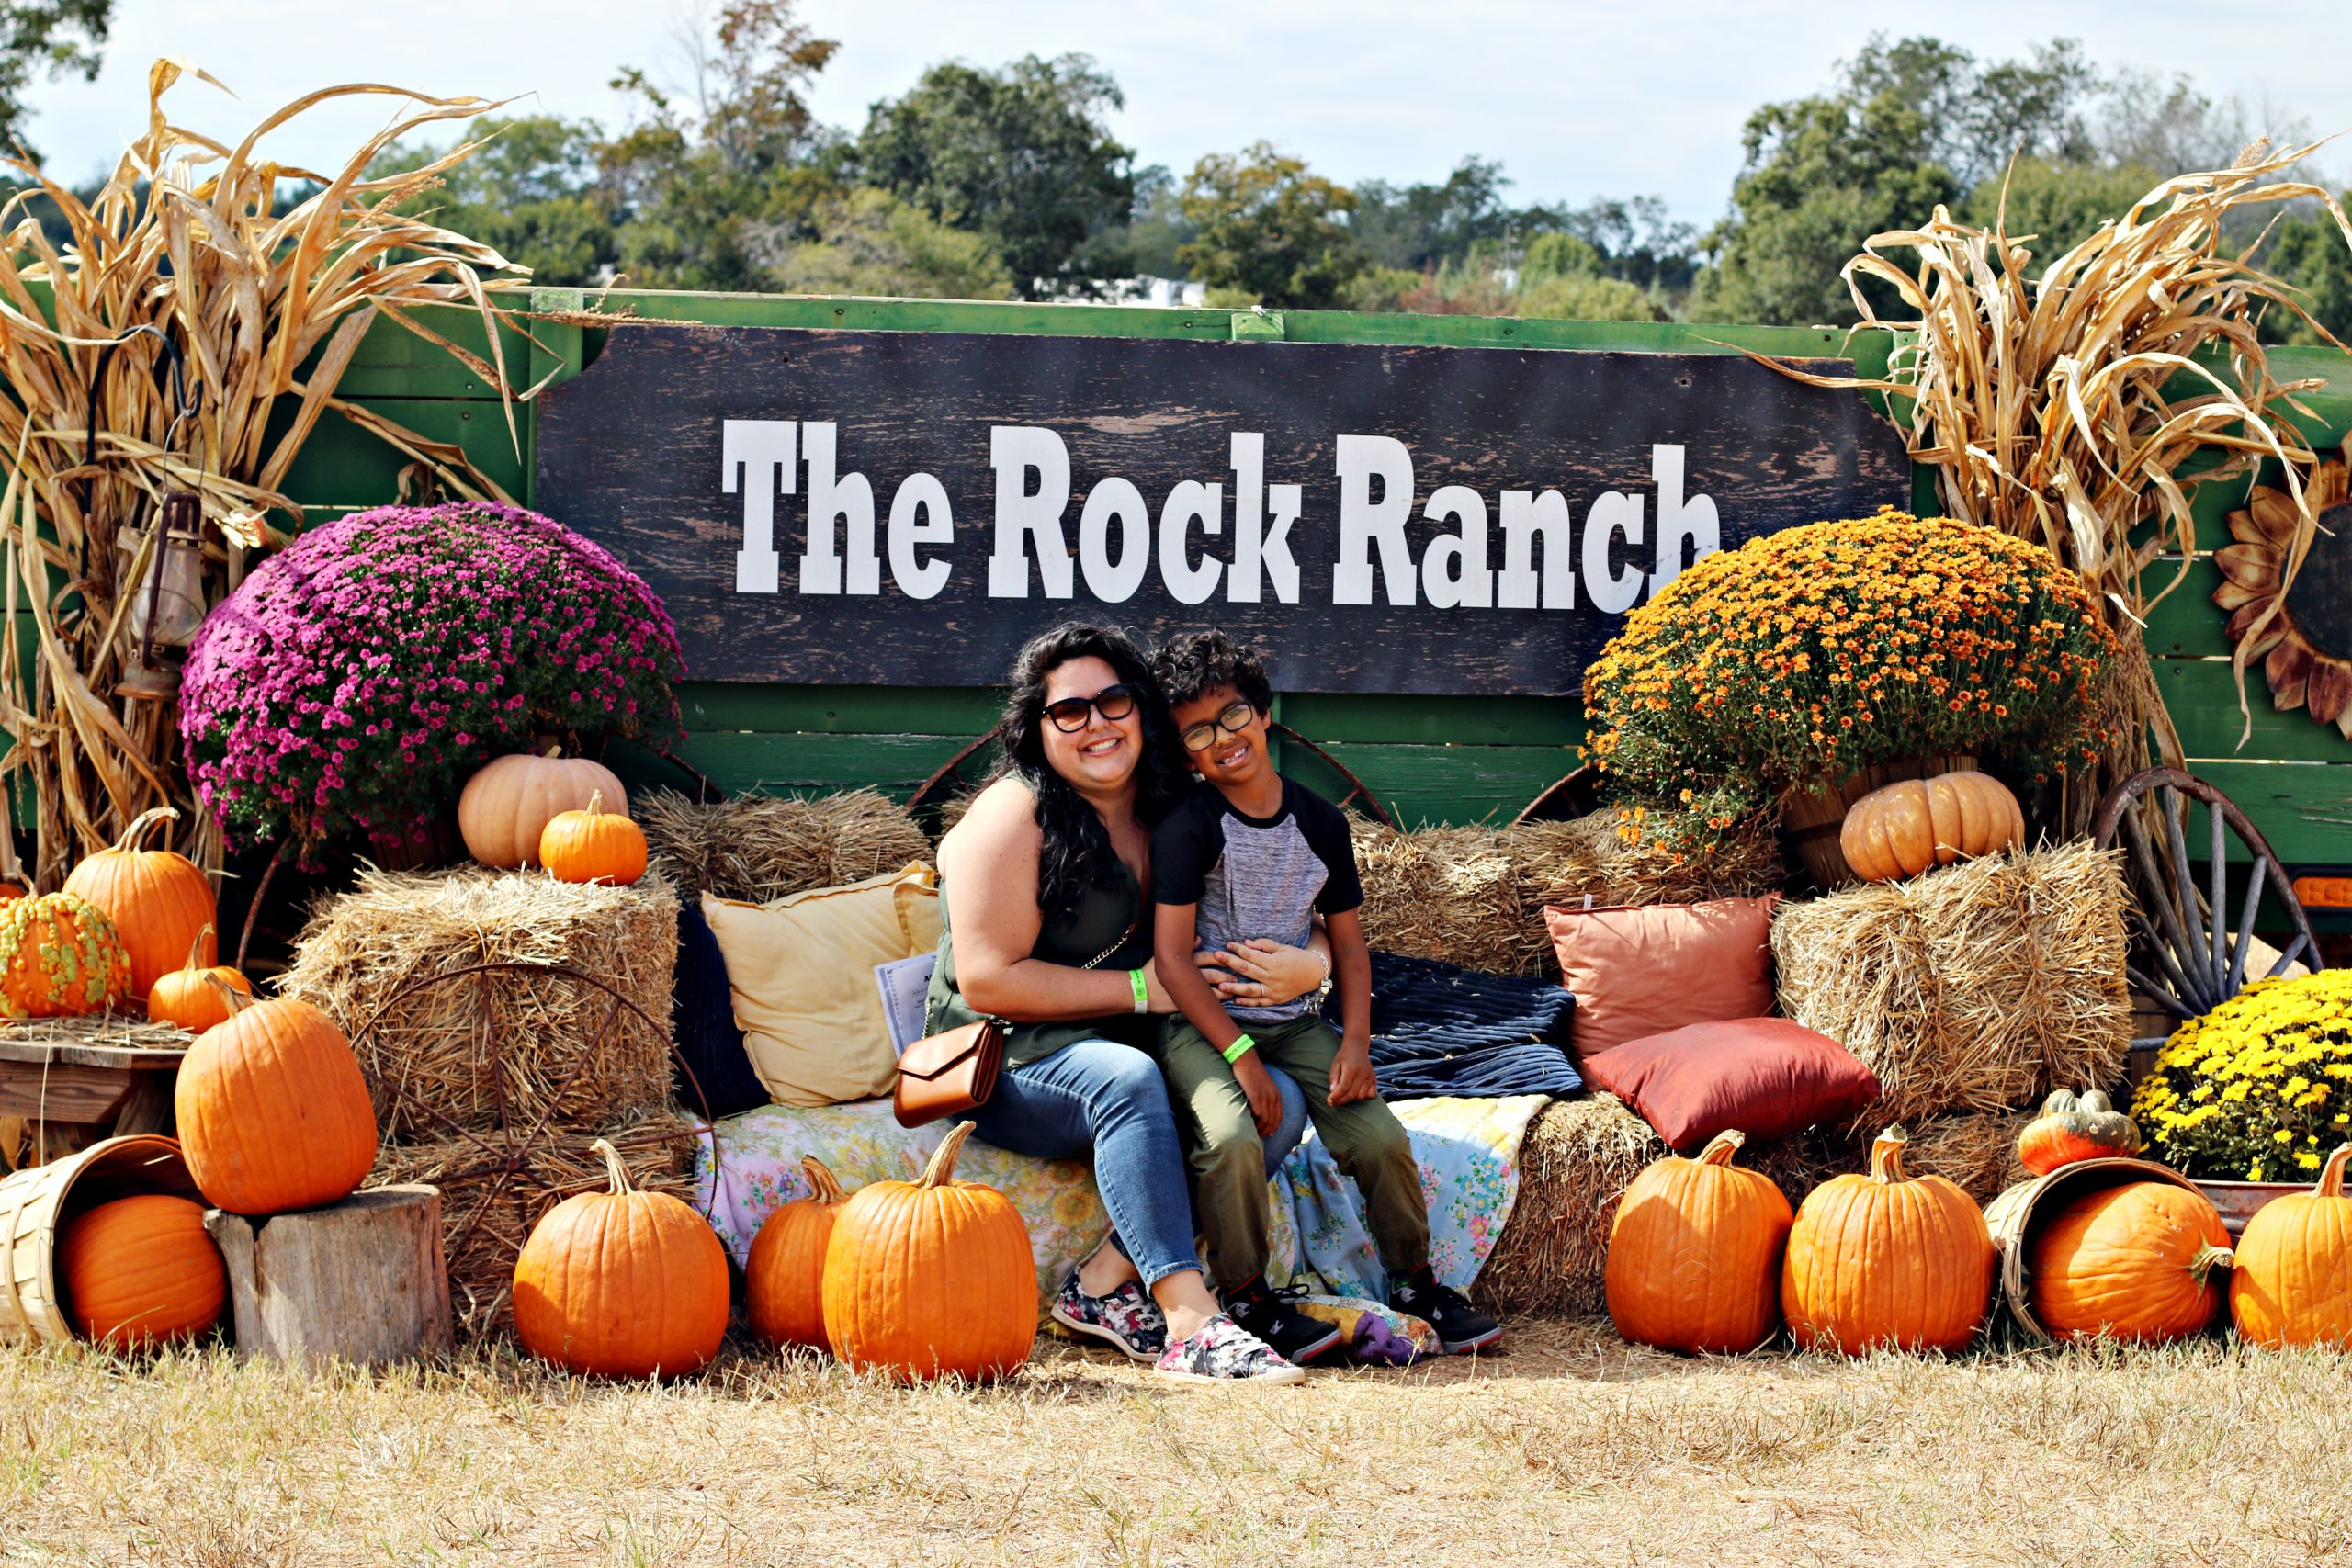 Mom and son in front of The Rock Ranch sign.